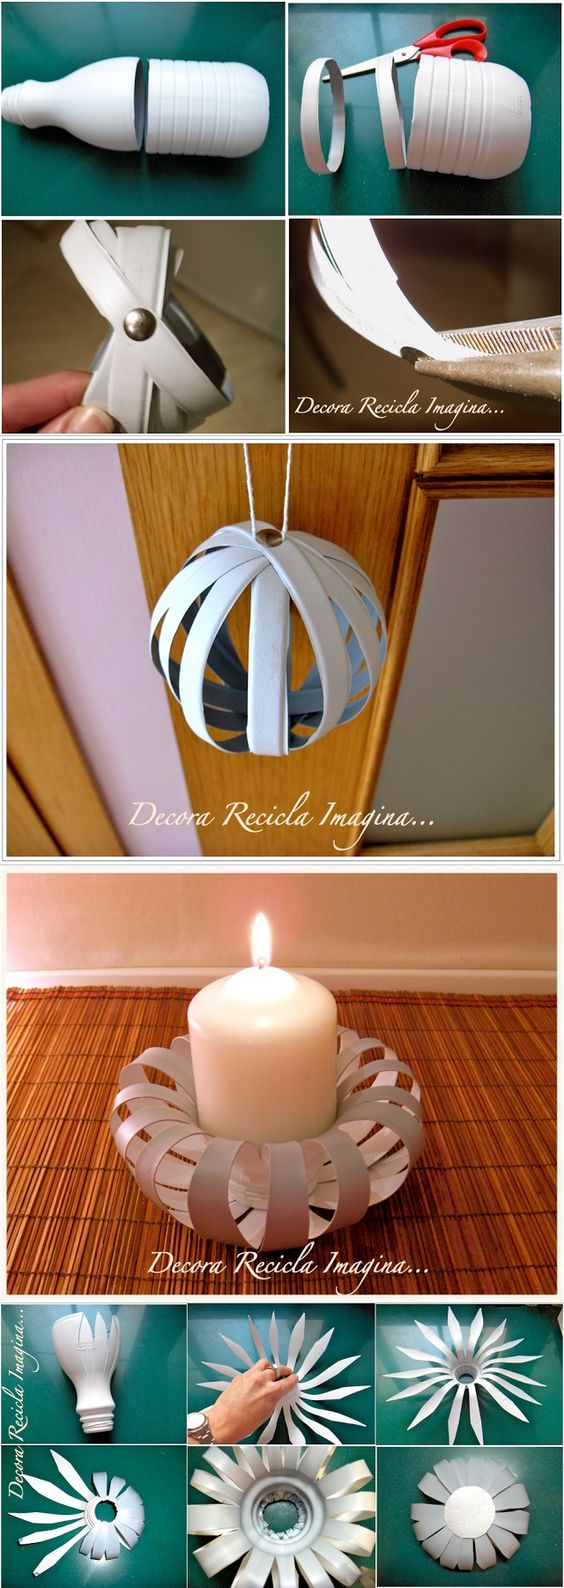 Plastic bottles diy candle holders and diy candles on for Candle craft ideas